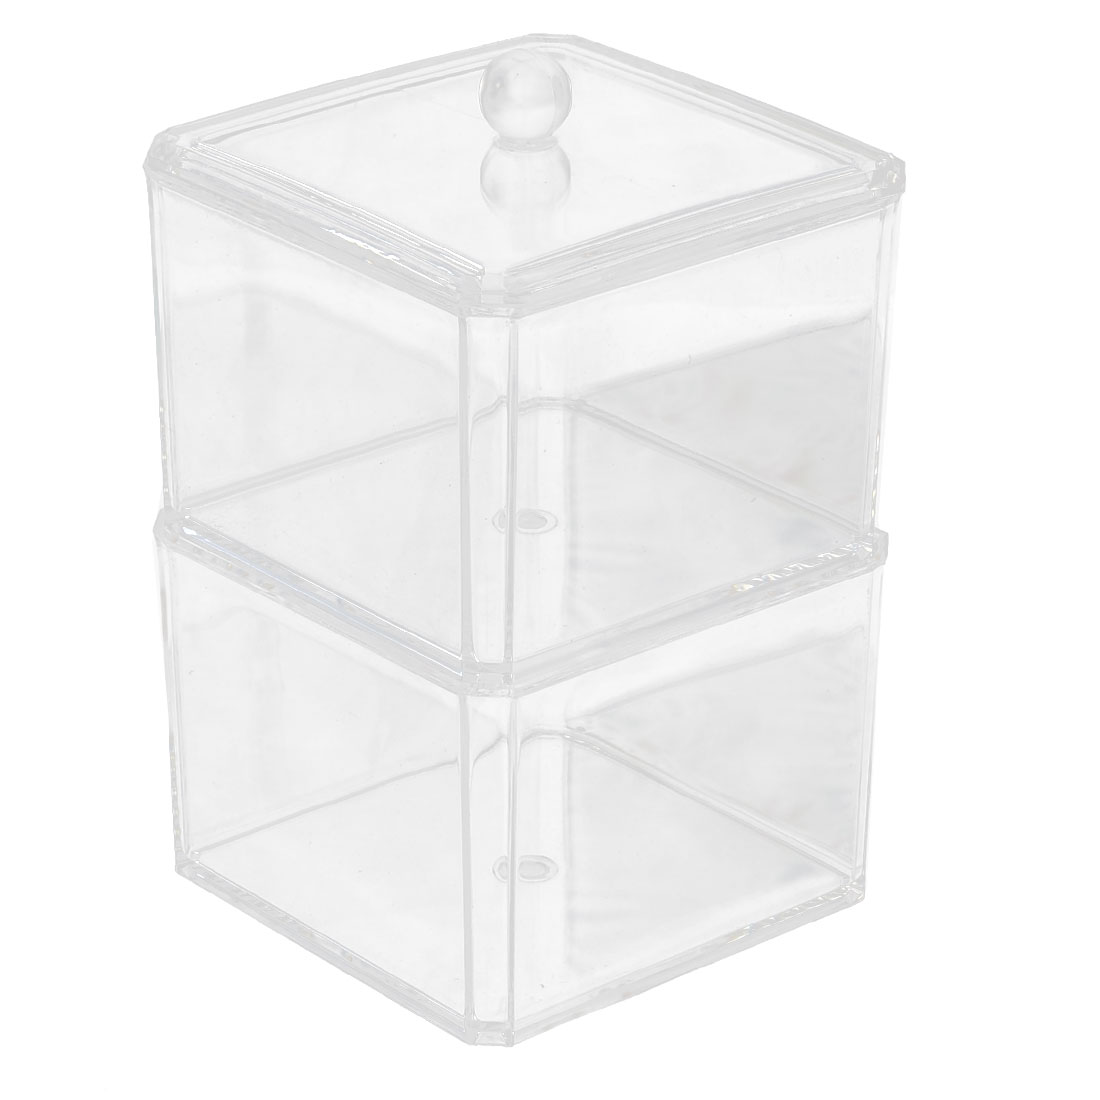 Acrylic Accessory Swab Holder Storage Box Cosmetic Organizer Set 2 in 1